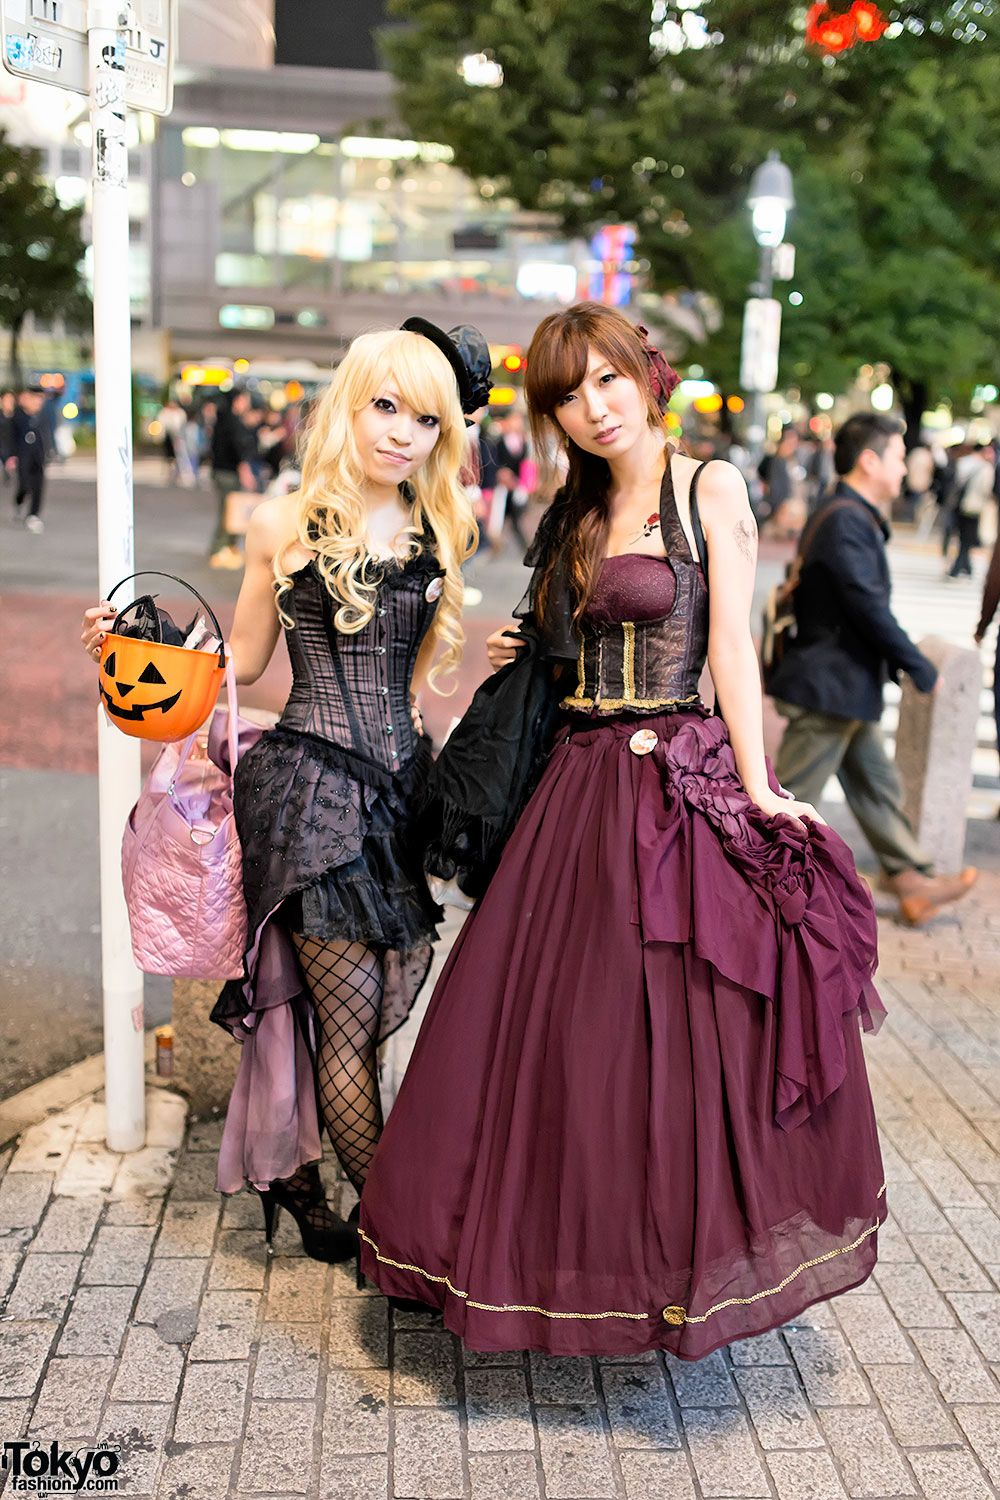 Halloween in Japan - Shibuya Street Party Costume Pictures 2013 | 30 October 2013 | #Fashion #Harajuku (原宿) #Shibuya (渋谷) #Tokyo (東京) #Japan (日本)